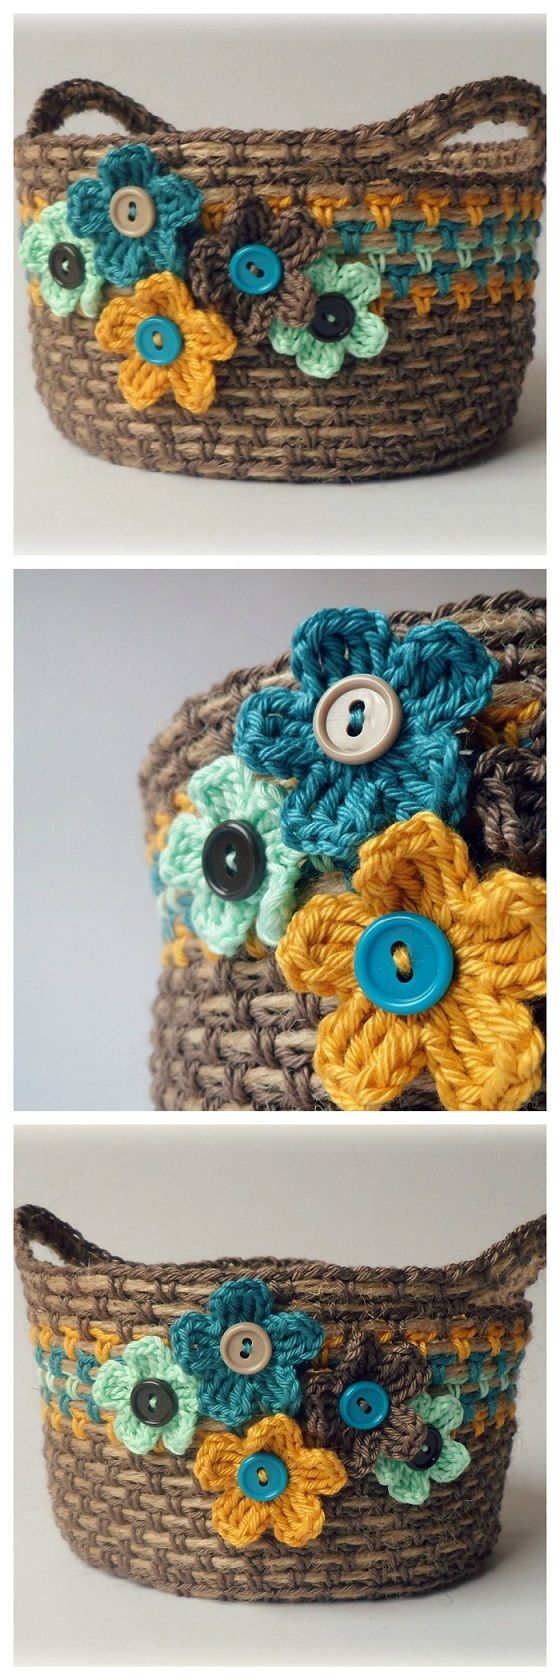 crochet basket with rope, flowers and buttons | Foxy patterns ...